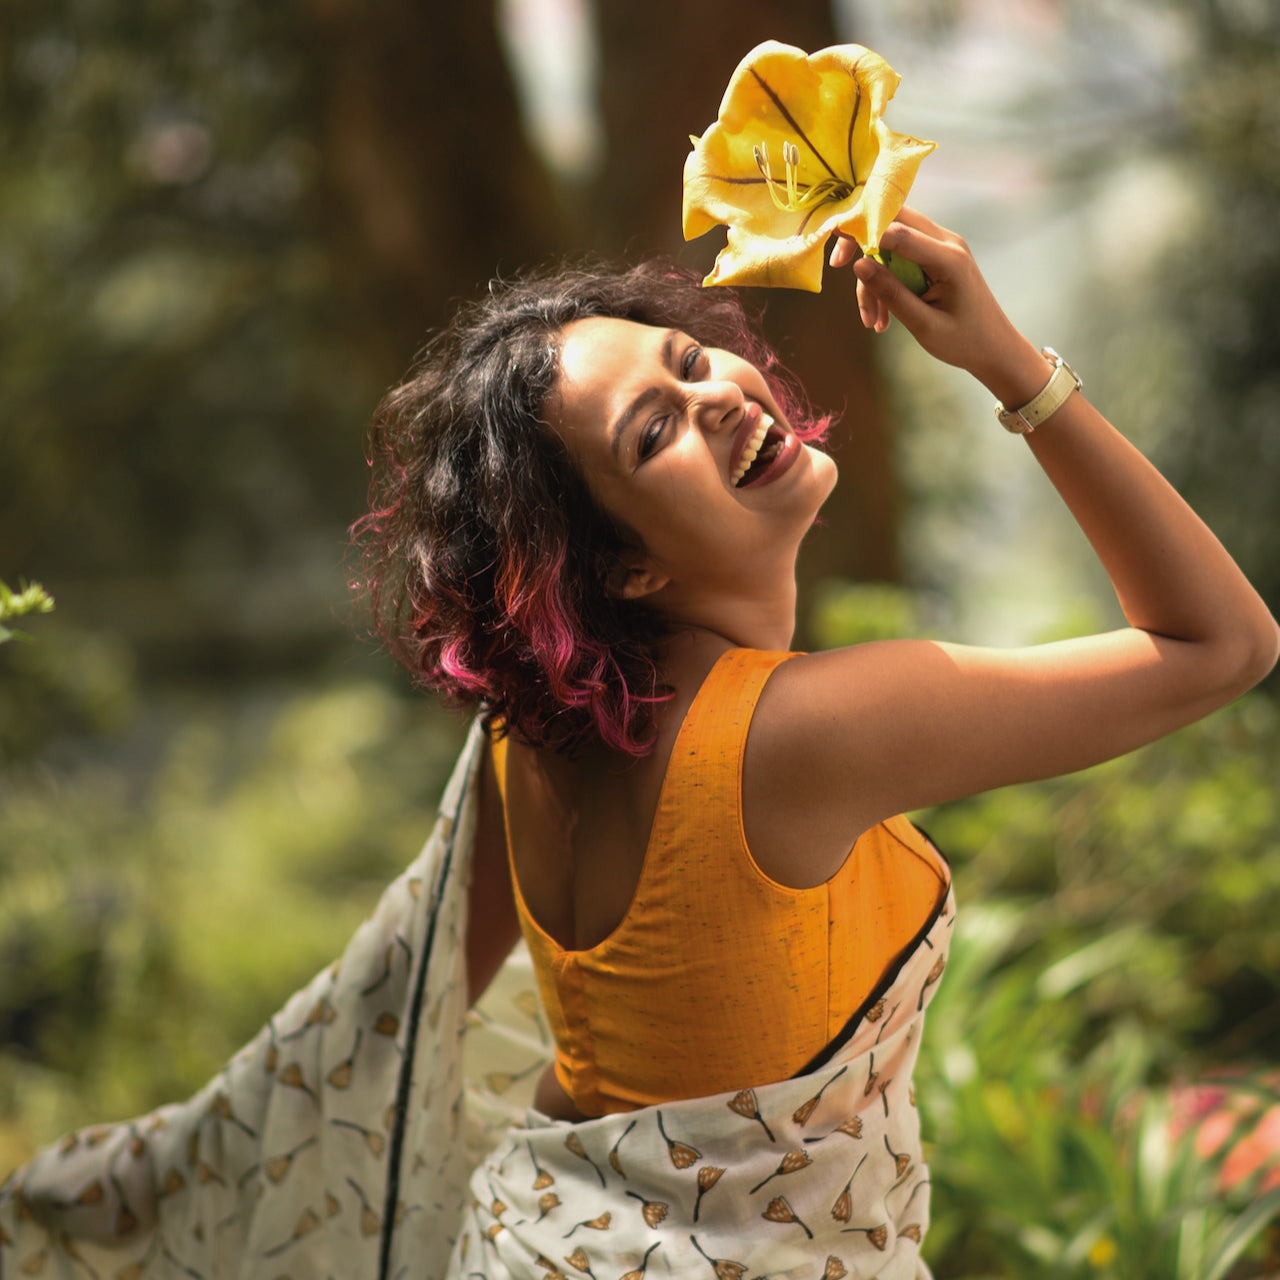 Sujata models a floral saree along with a bright yellow top.